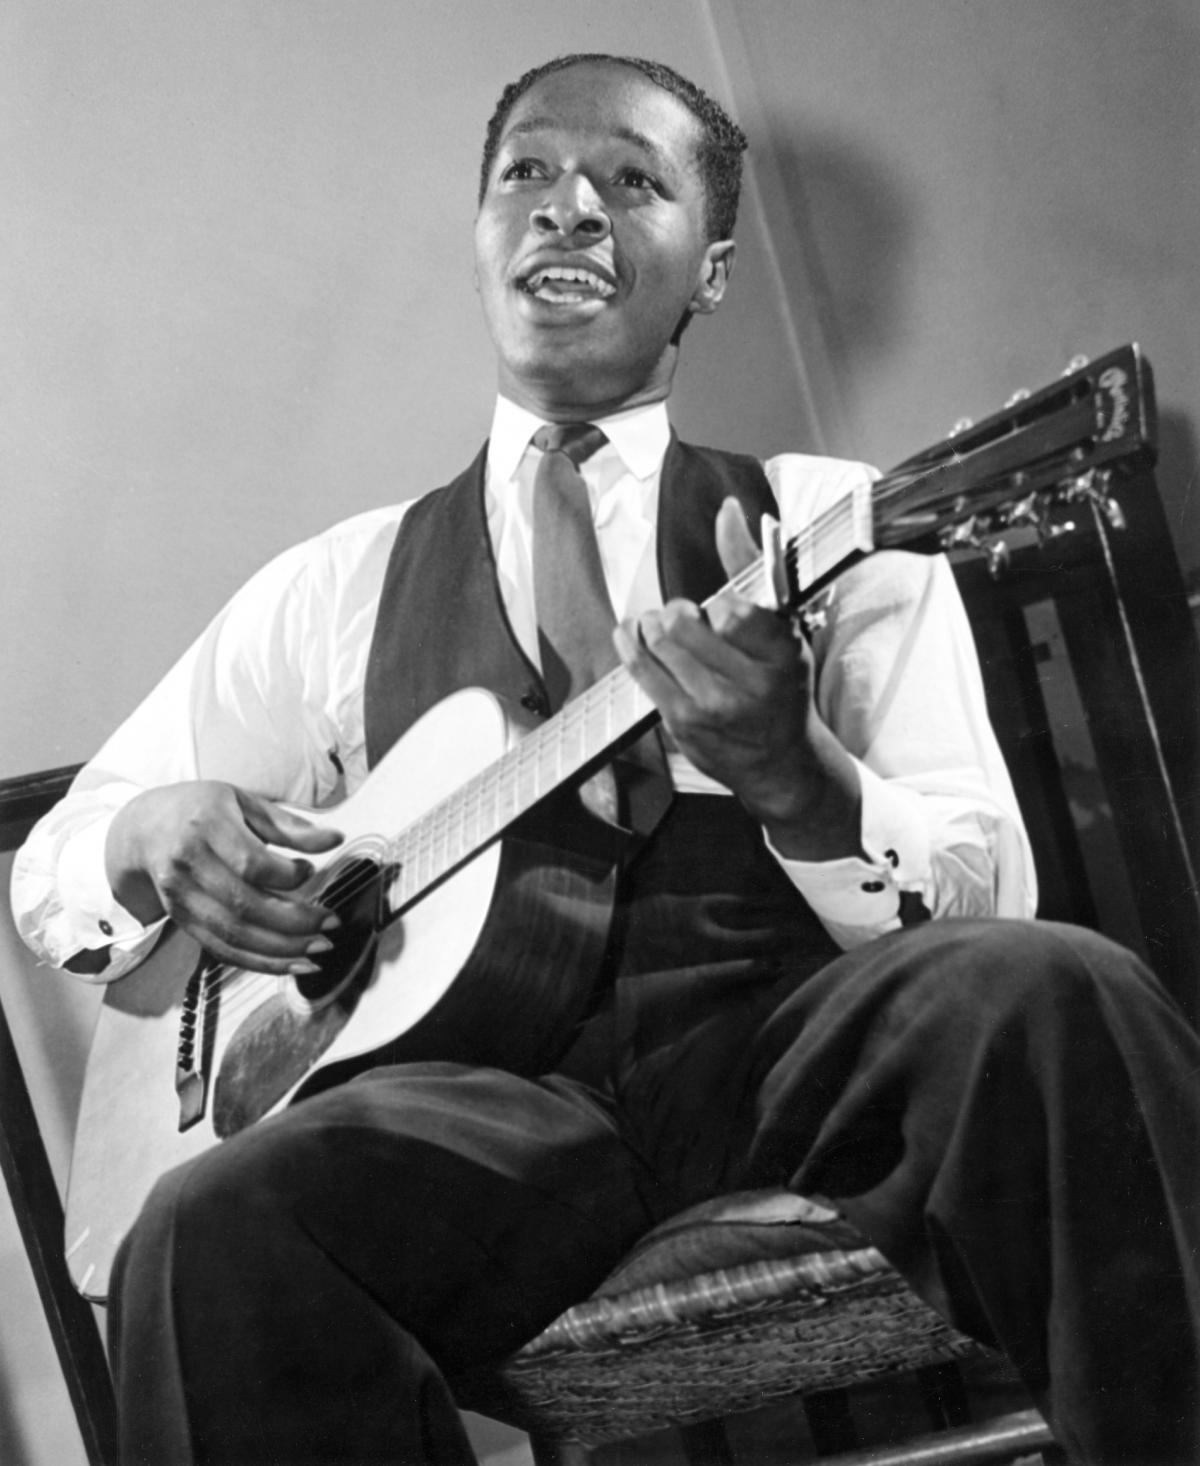 White, wearing a tie and vest, seated, strumming a guitar